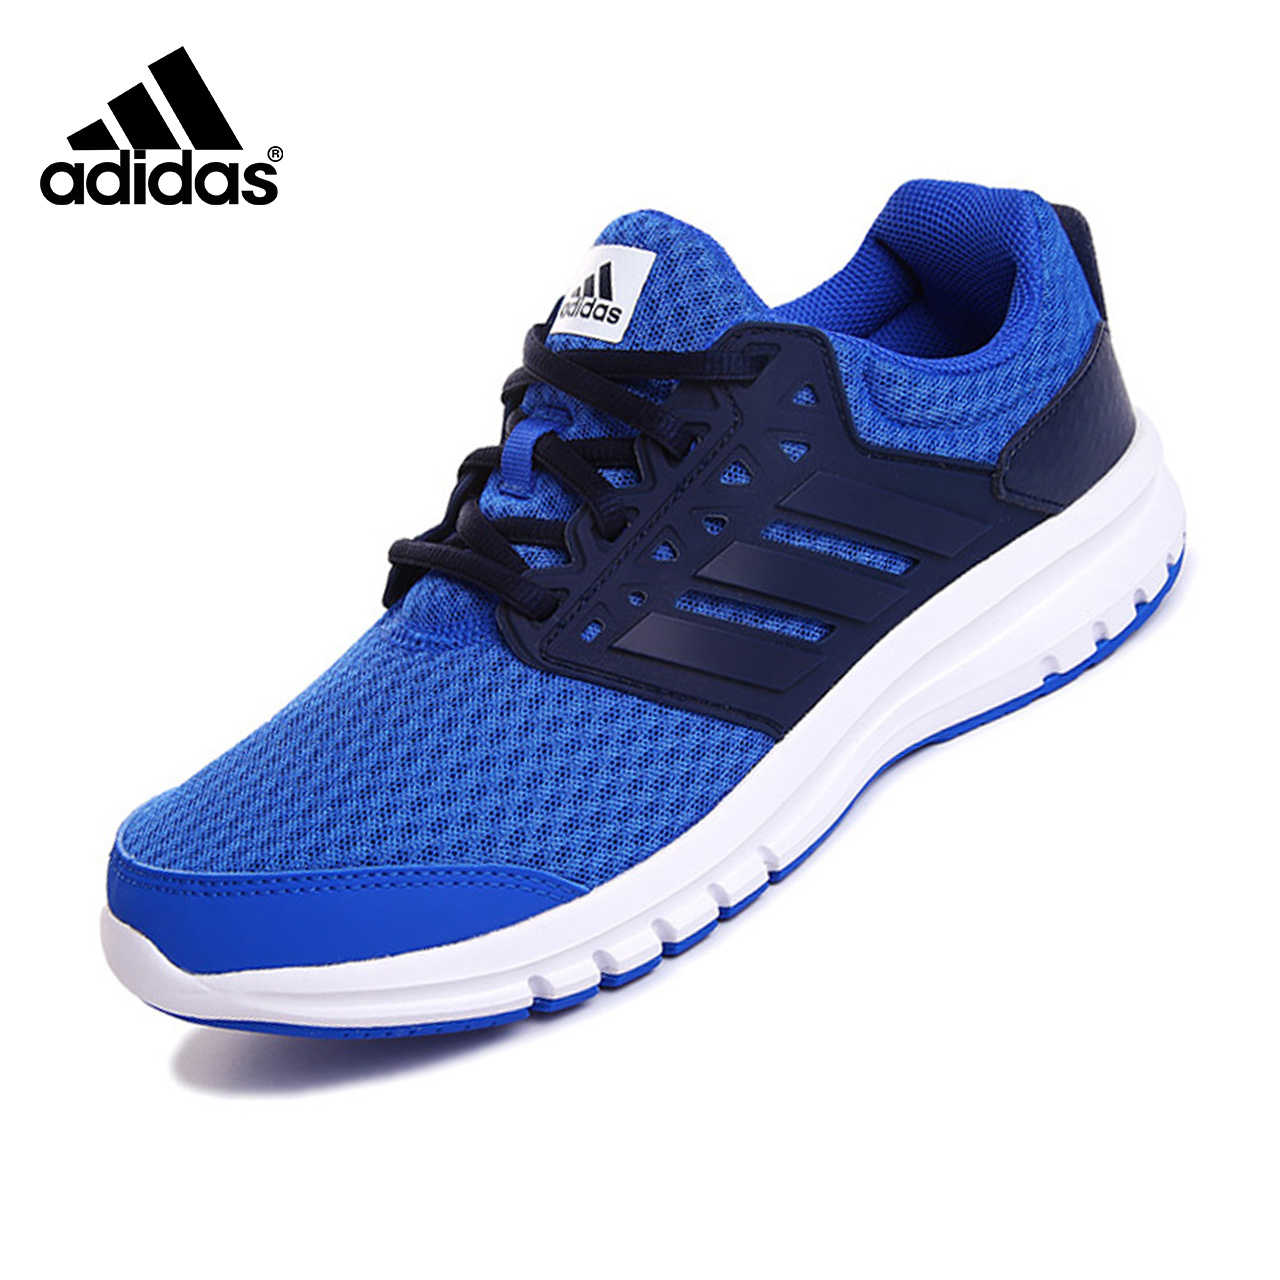 33dbf774c7d Get Quotations · Adidas adidas shoes 2016 autumn new boys sports shoes  breathable shoes casual shoes S79812